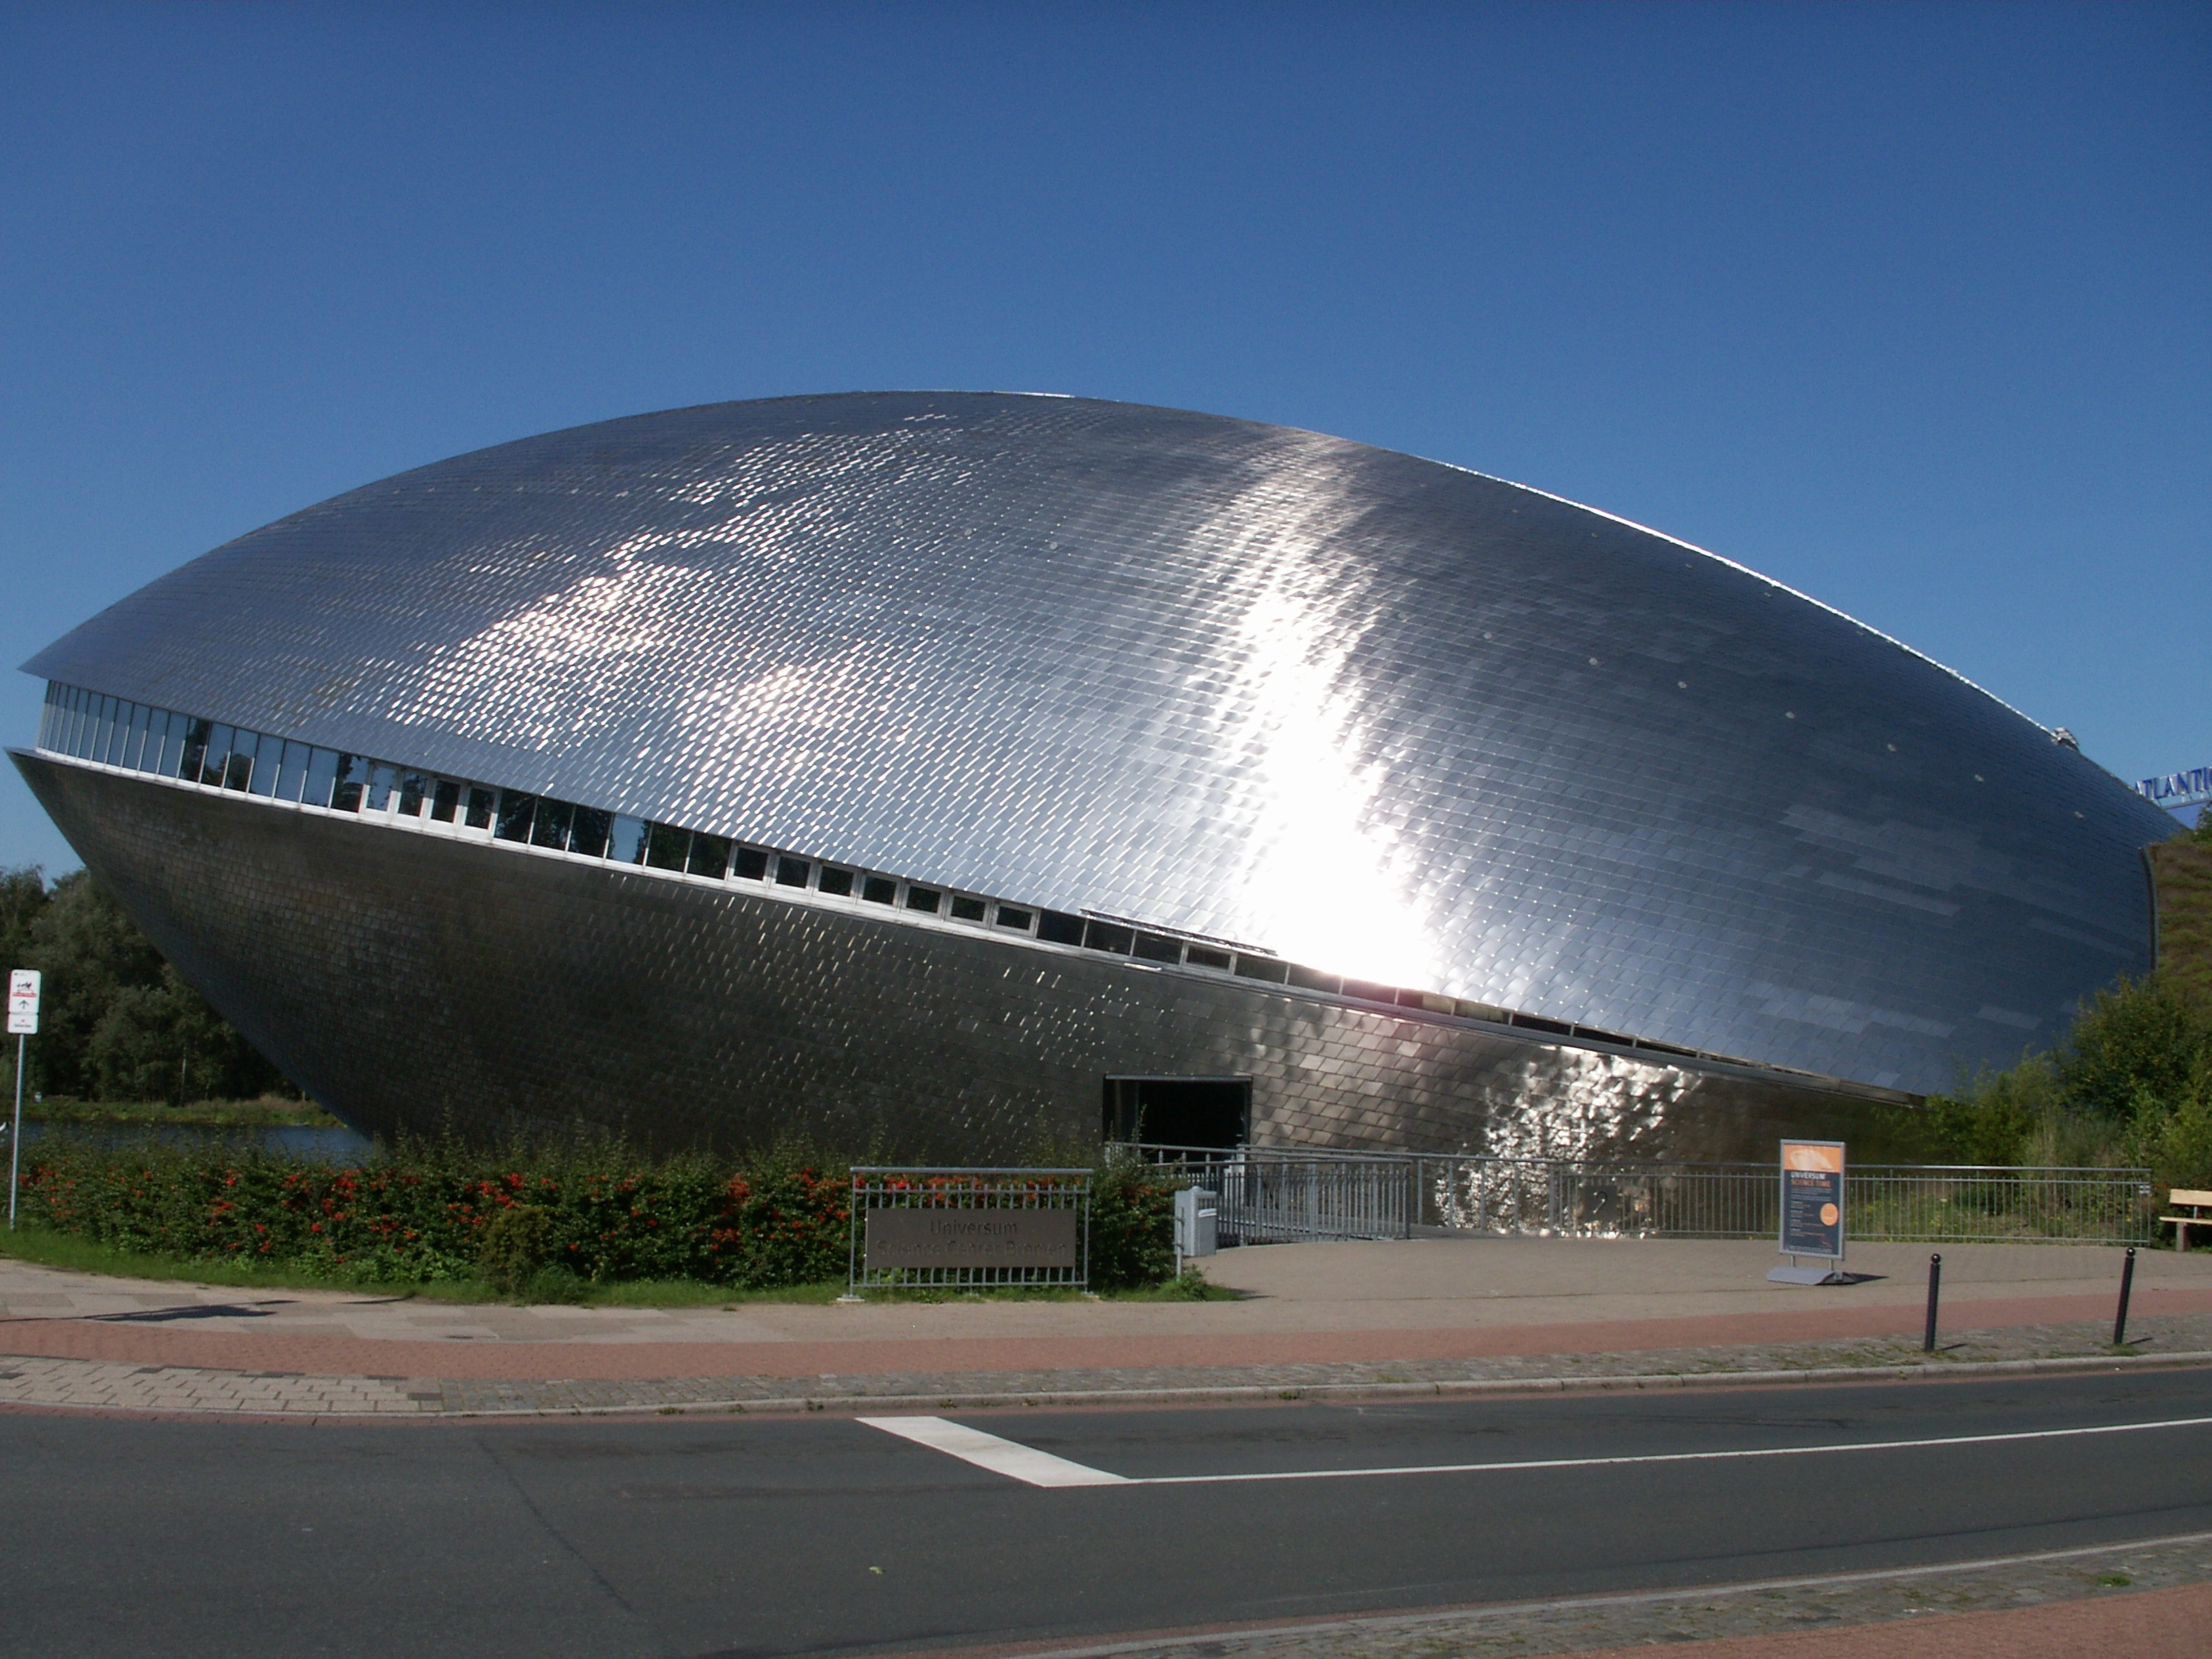 http://upload.wikimedia.org/wikipedia/commons/a/a3/Universum%C2%AE_Science_Center,_Bremen,_Germany.jpg